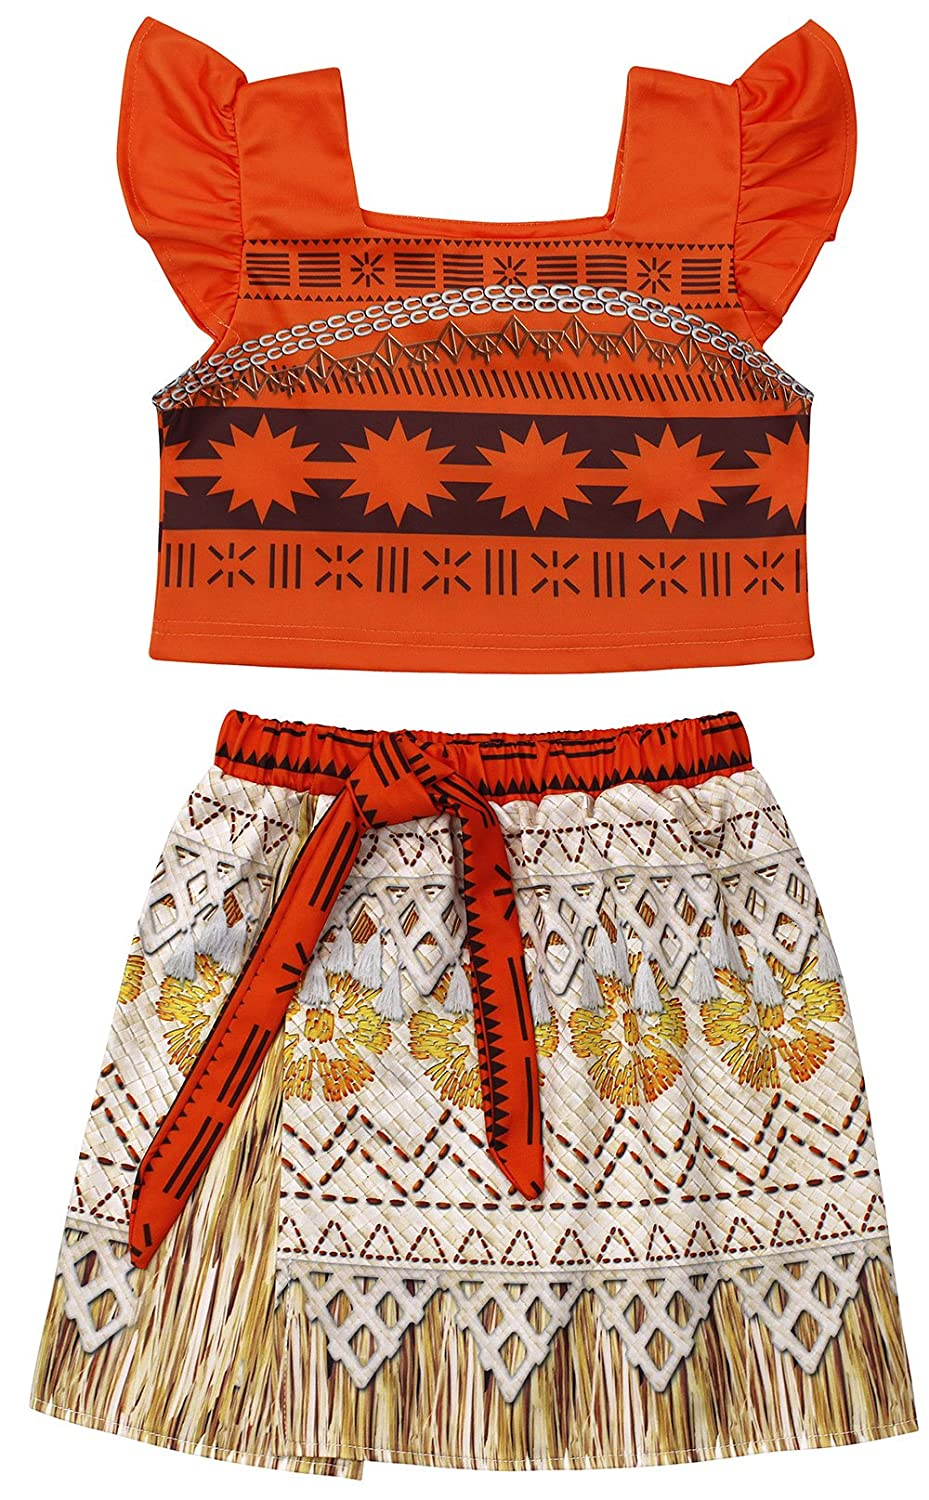 7d71bbee4b Moana Costume for Girls Dress up Toddler Baby Cosplay Outfit Little Kids  Skirt Sets